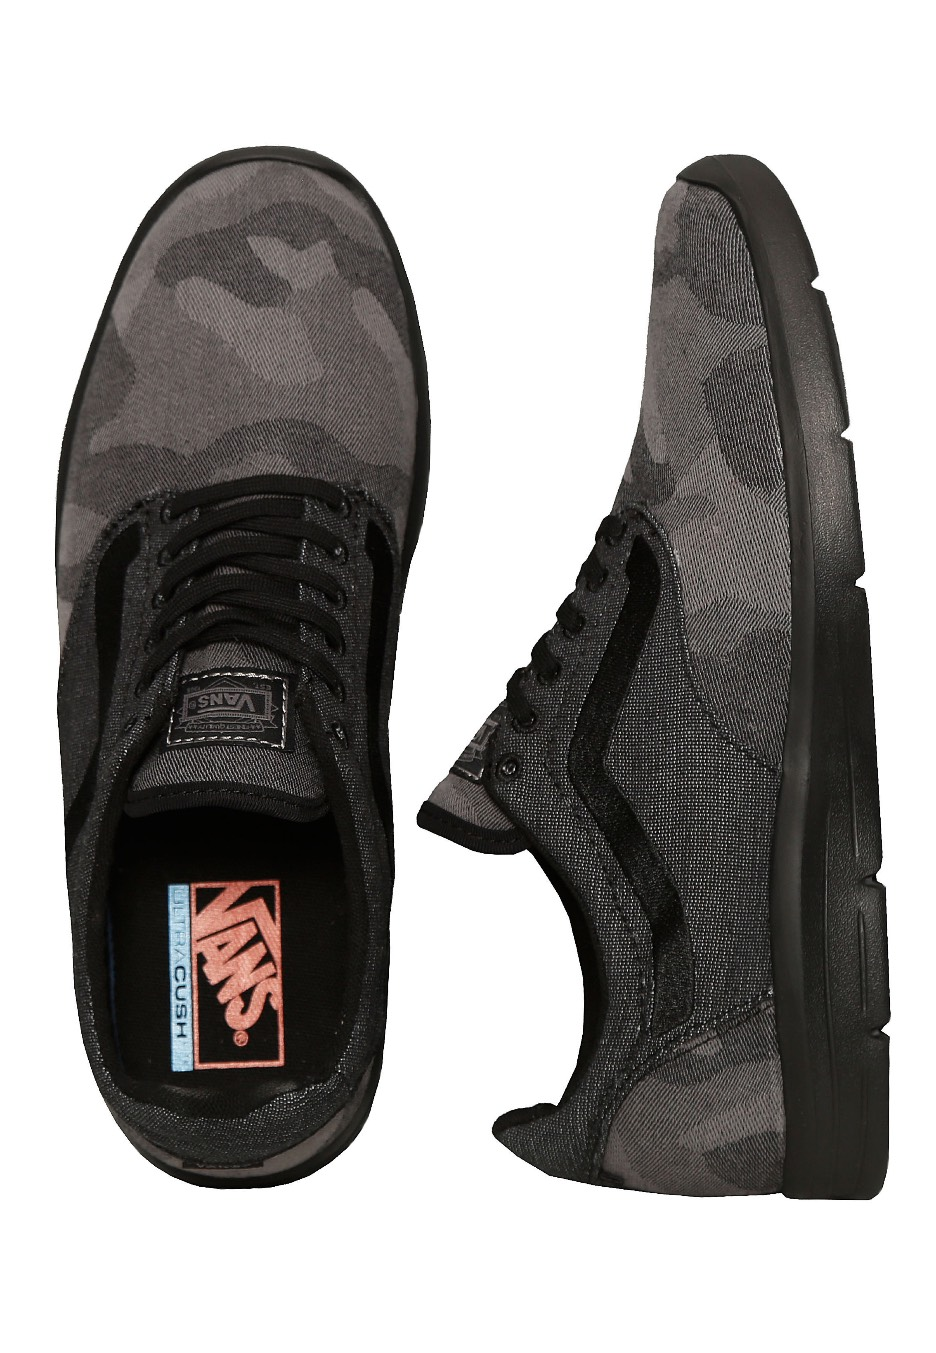 dfff630498da31 Vans - Iso 1.5 Camo Textile Black Black - Shoes - Impericon.com Worldwide